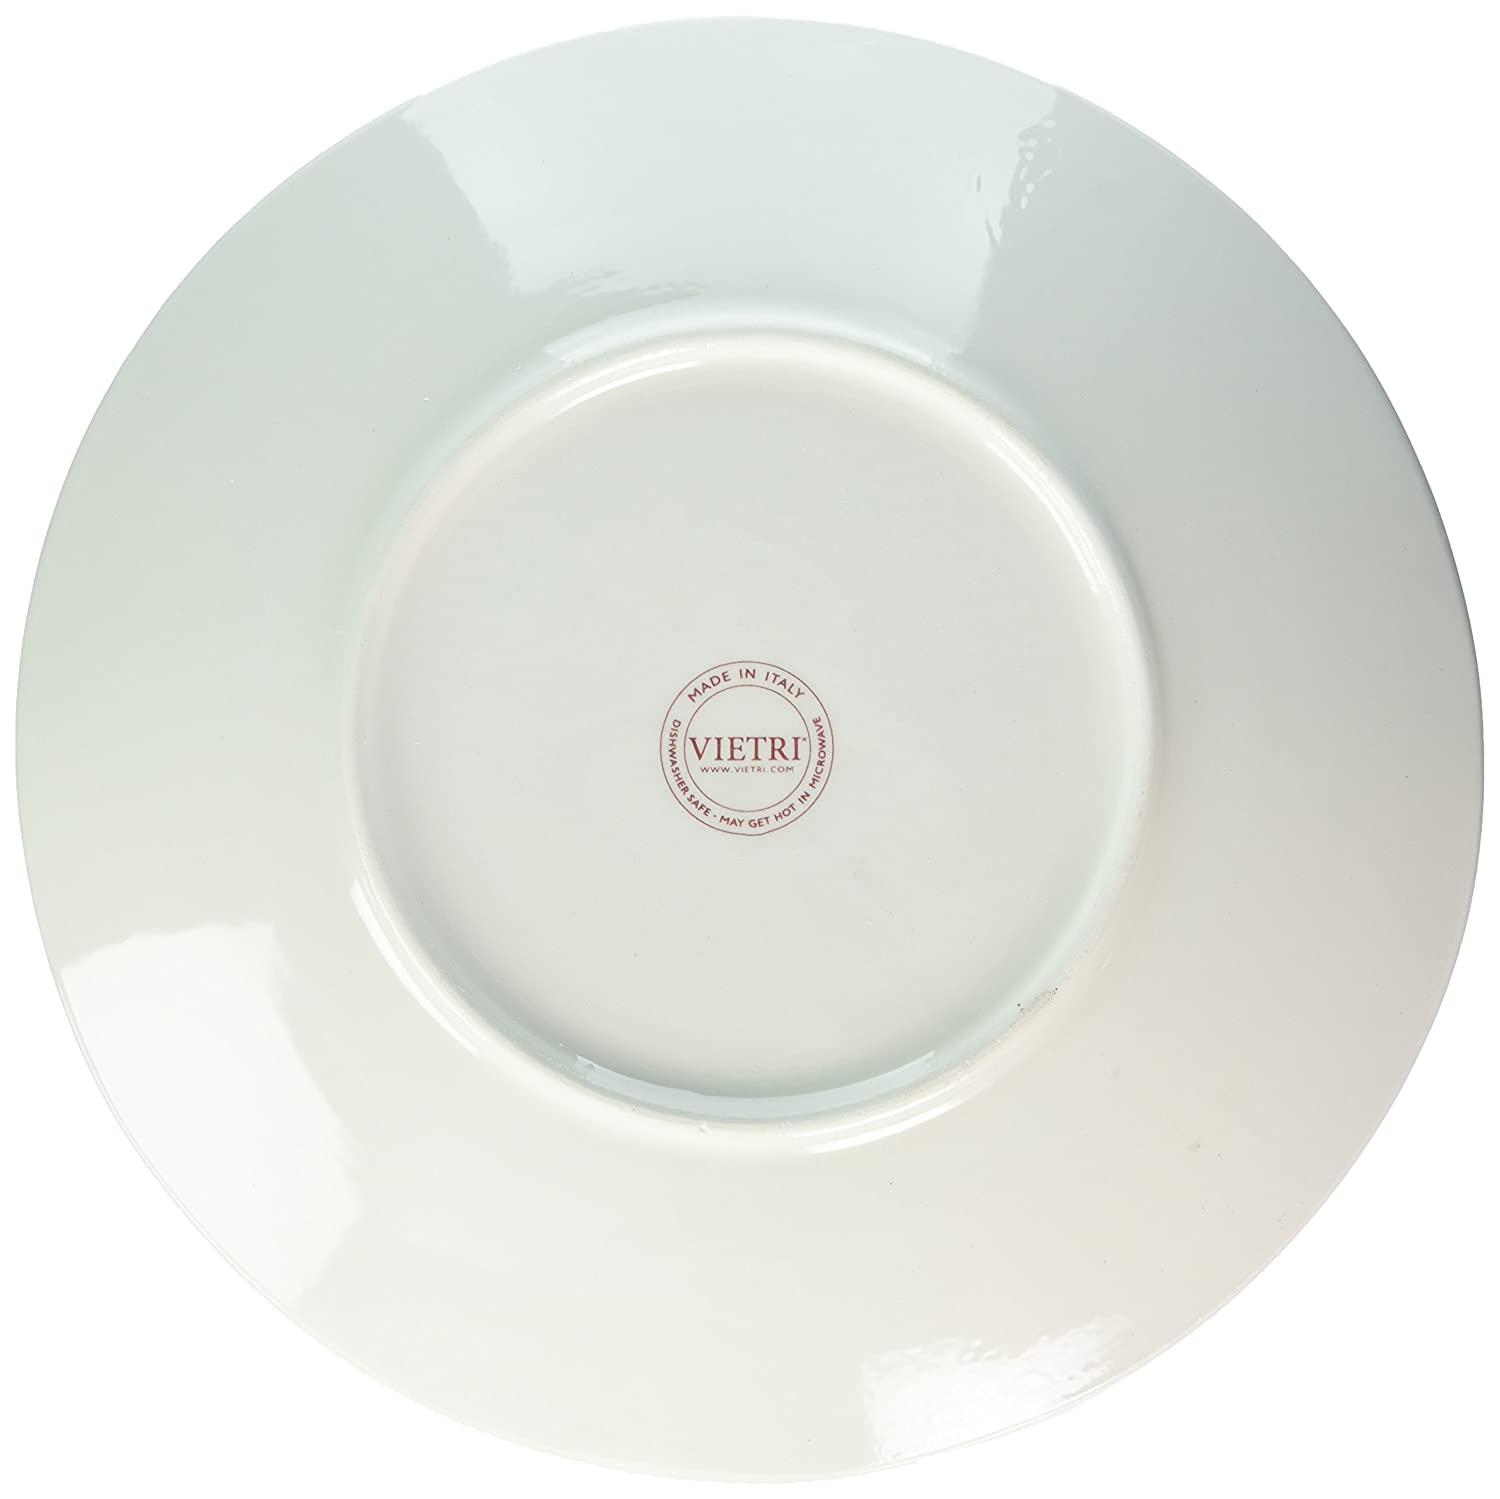 Vietri Costiera Assorted Blue Salad Plates S//4 PartialUpdate